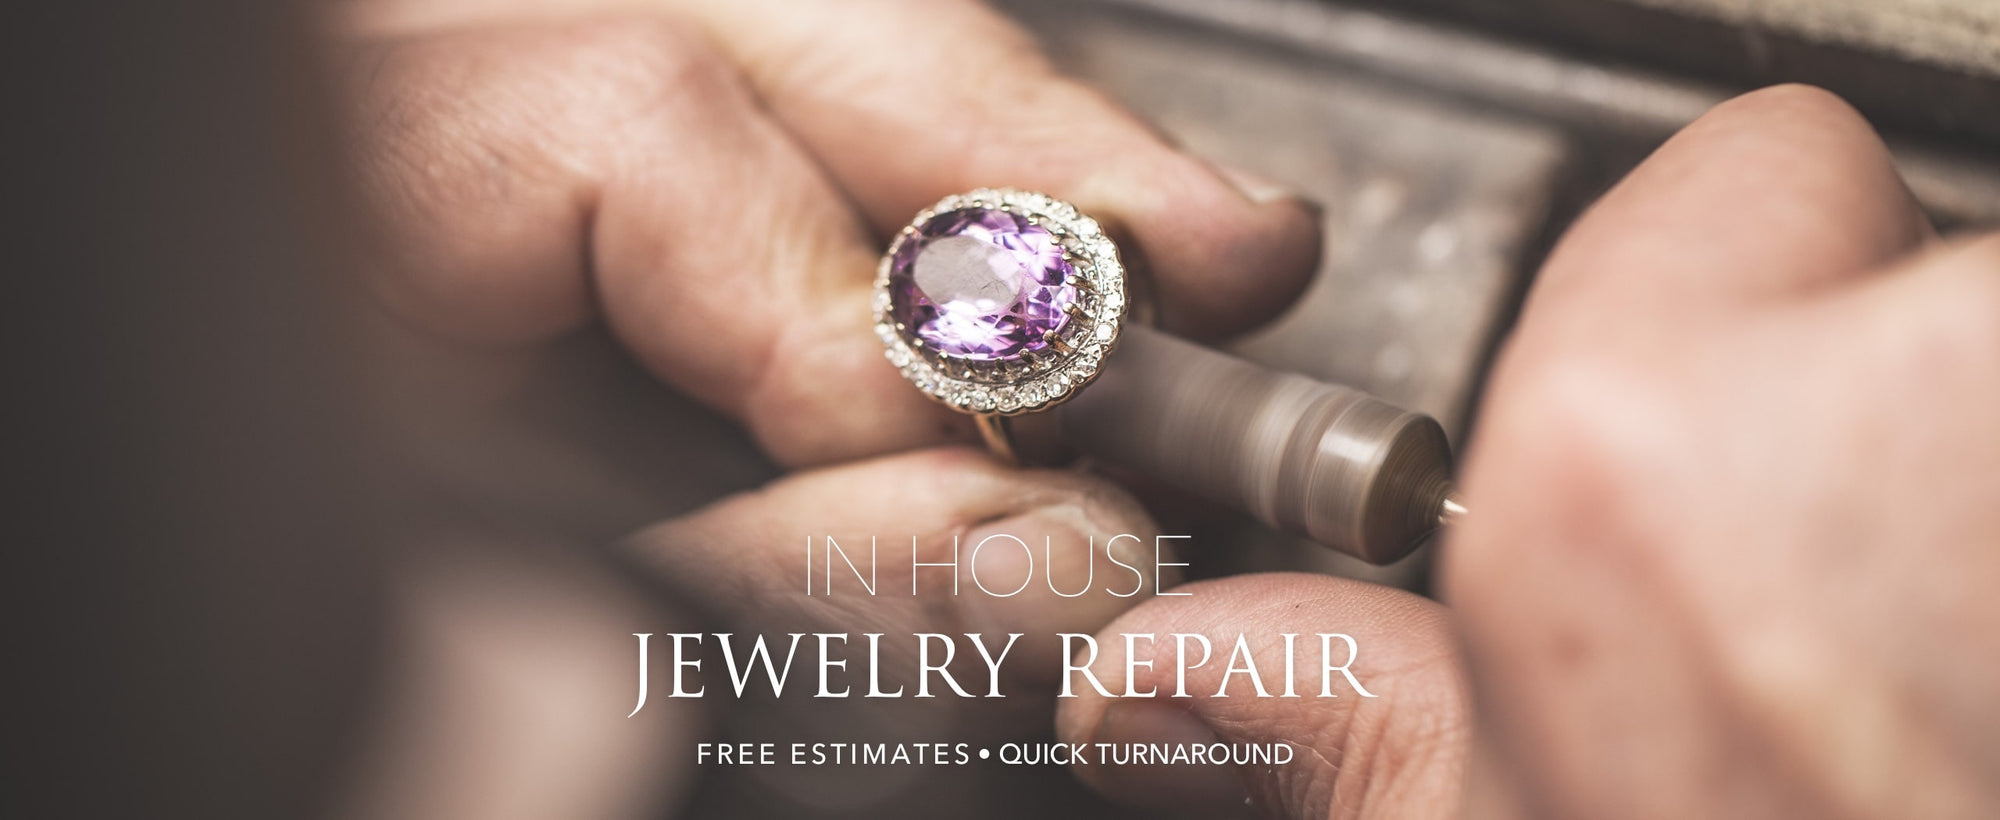 Arman's Jewellers Goldsmith in Kitchener Waterloo provides on-site Jewellery Repairs and Same Day Jewellery Services